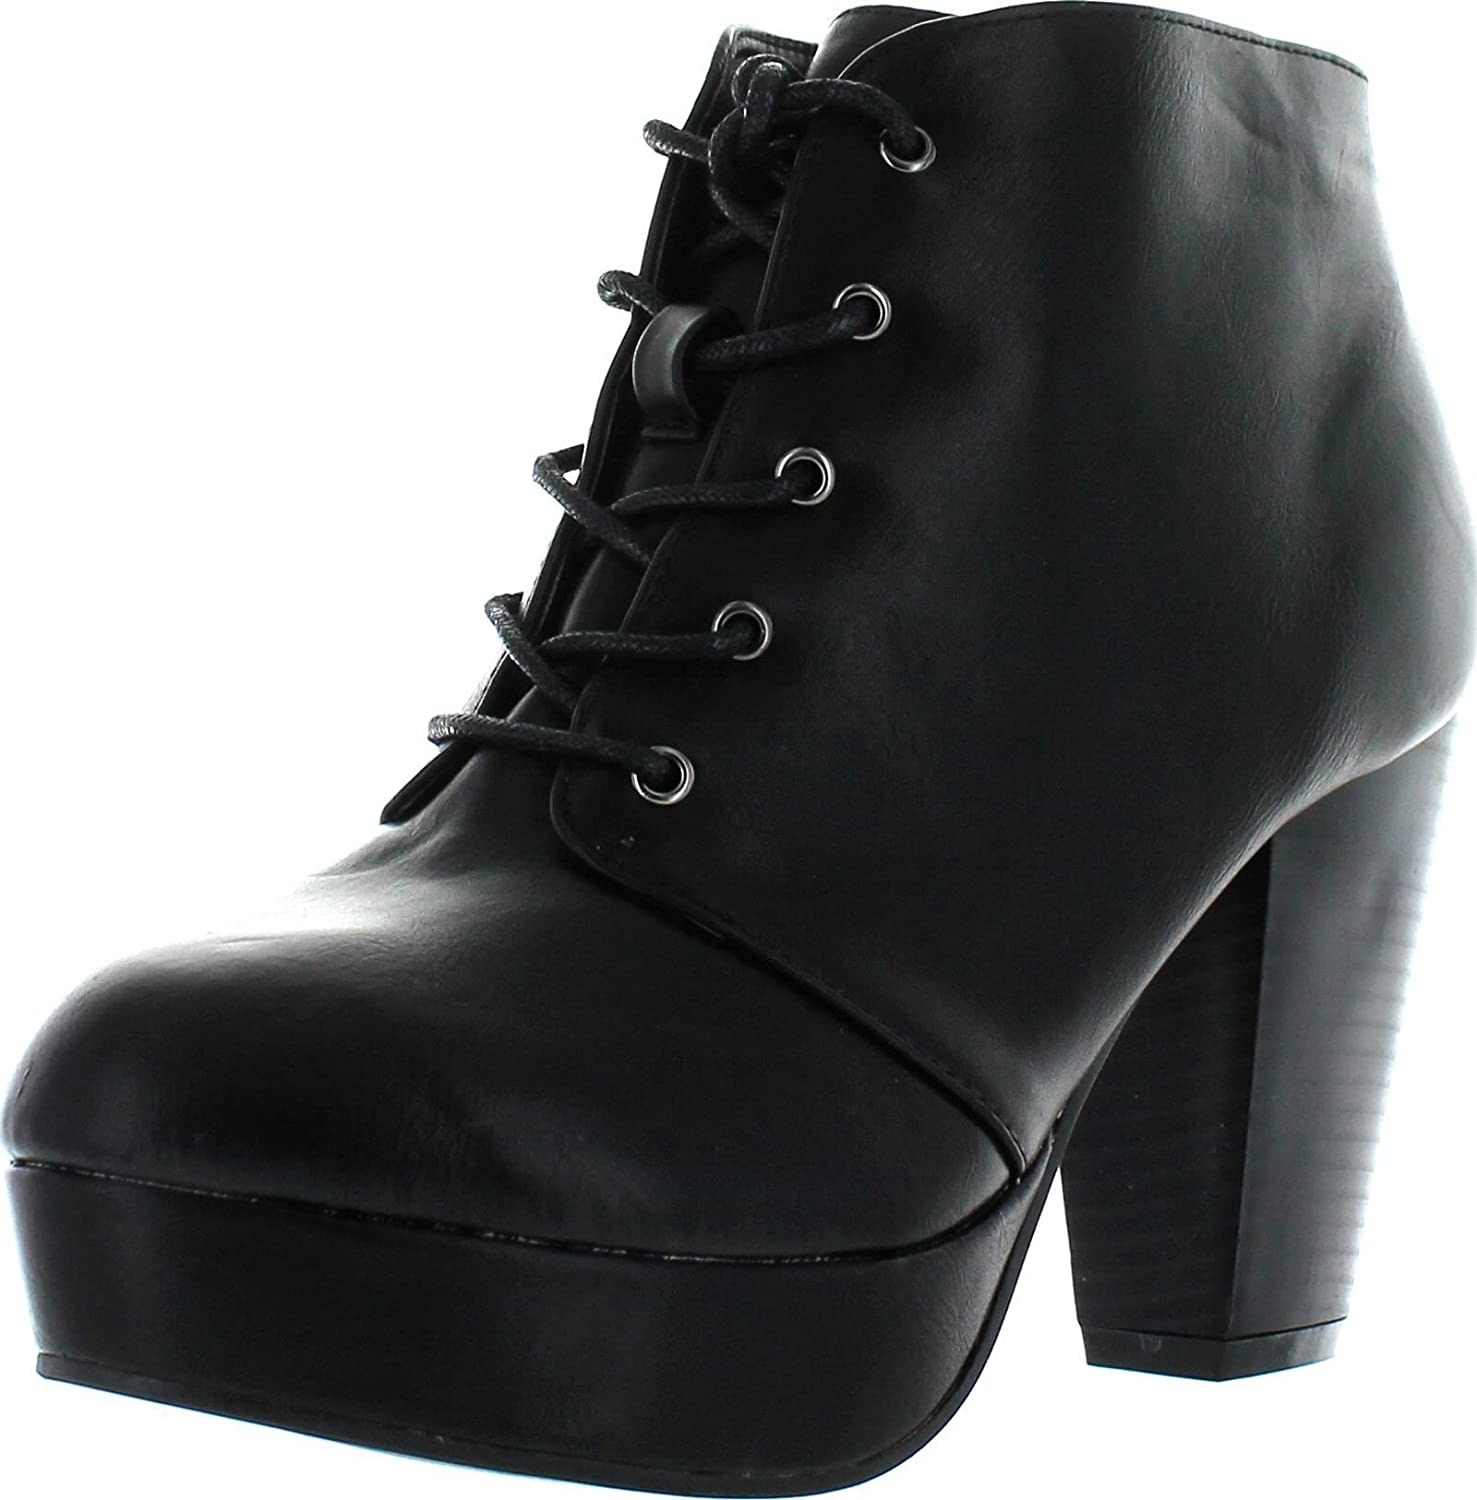 Titan Mall Forever Camille-66 Womens Fashion Chunky Heel Lace up Ankle Booties